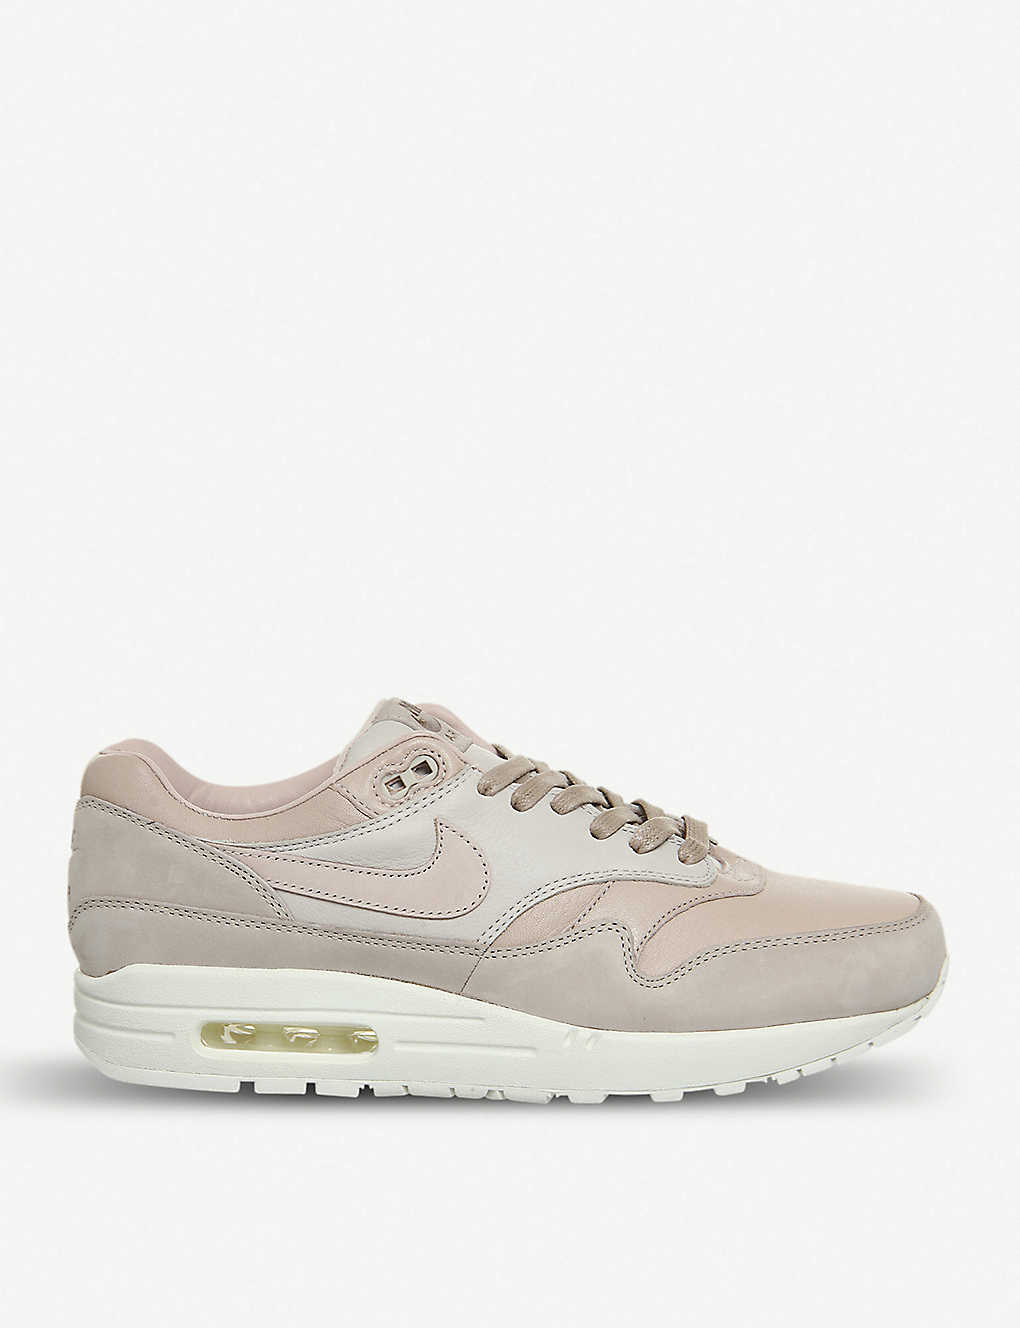 on sale ba603 162ef Nike Lab Air Max 1 Pinnacle leather trainers - Sand particle beige ...